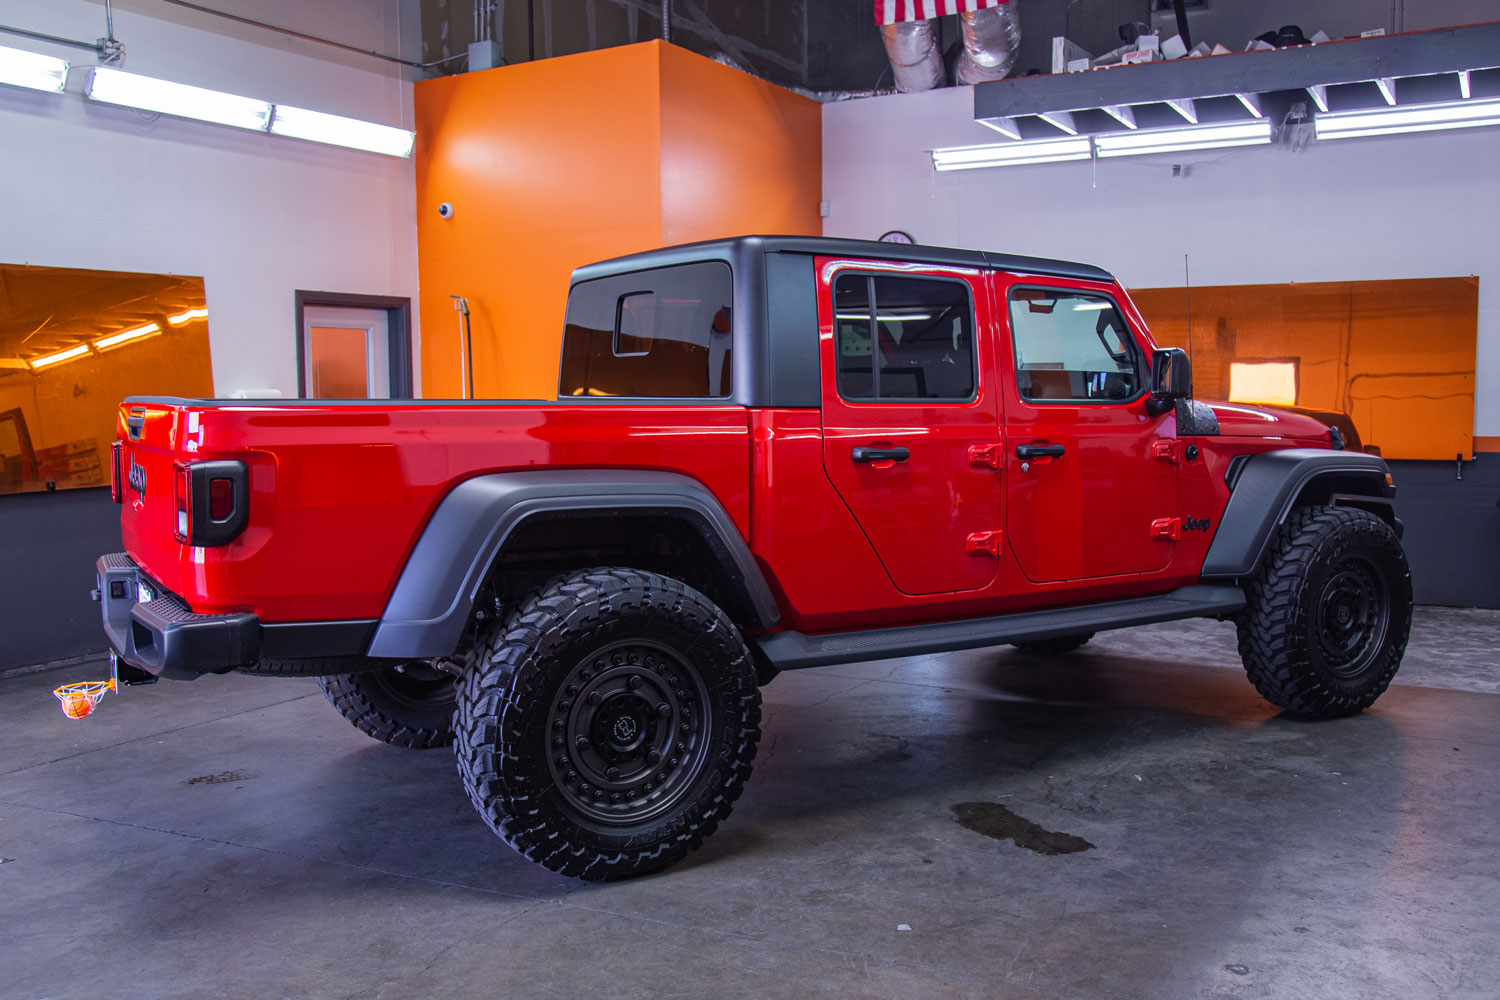 A red luxurious Jeep with nice tinted windows.